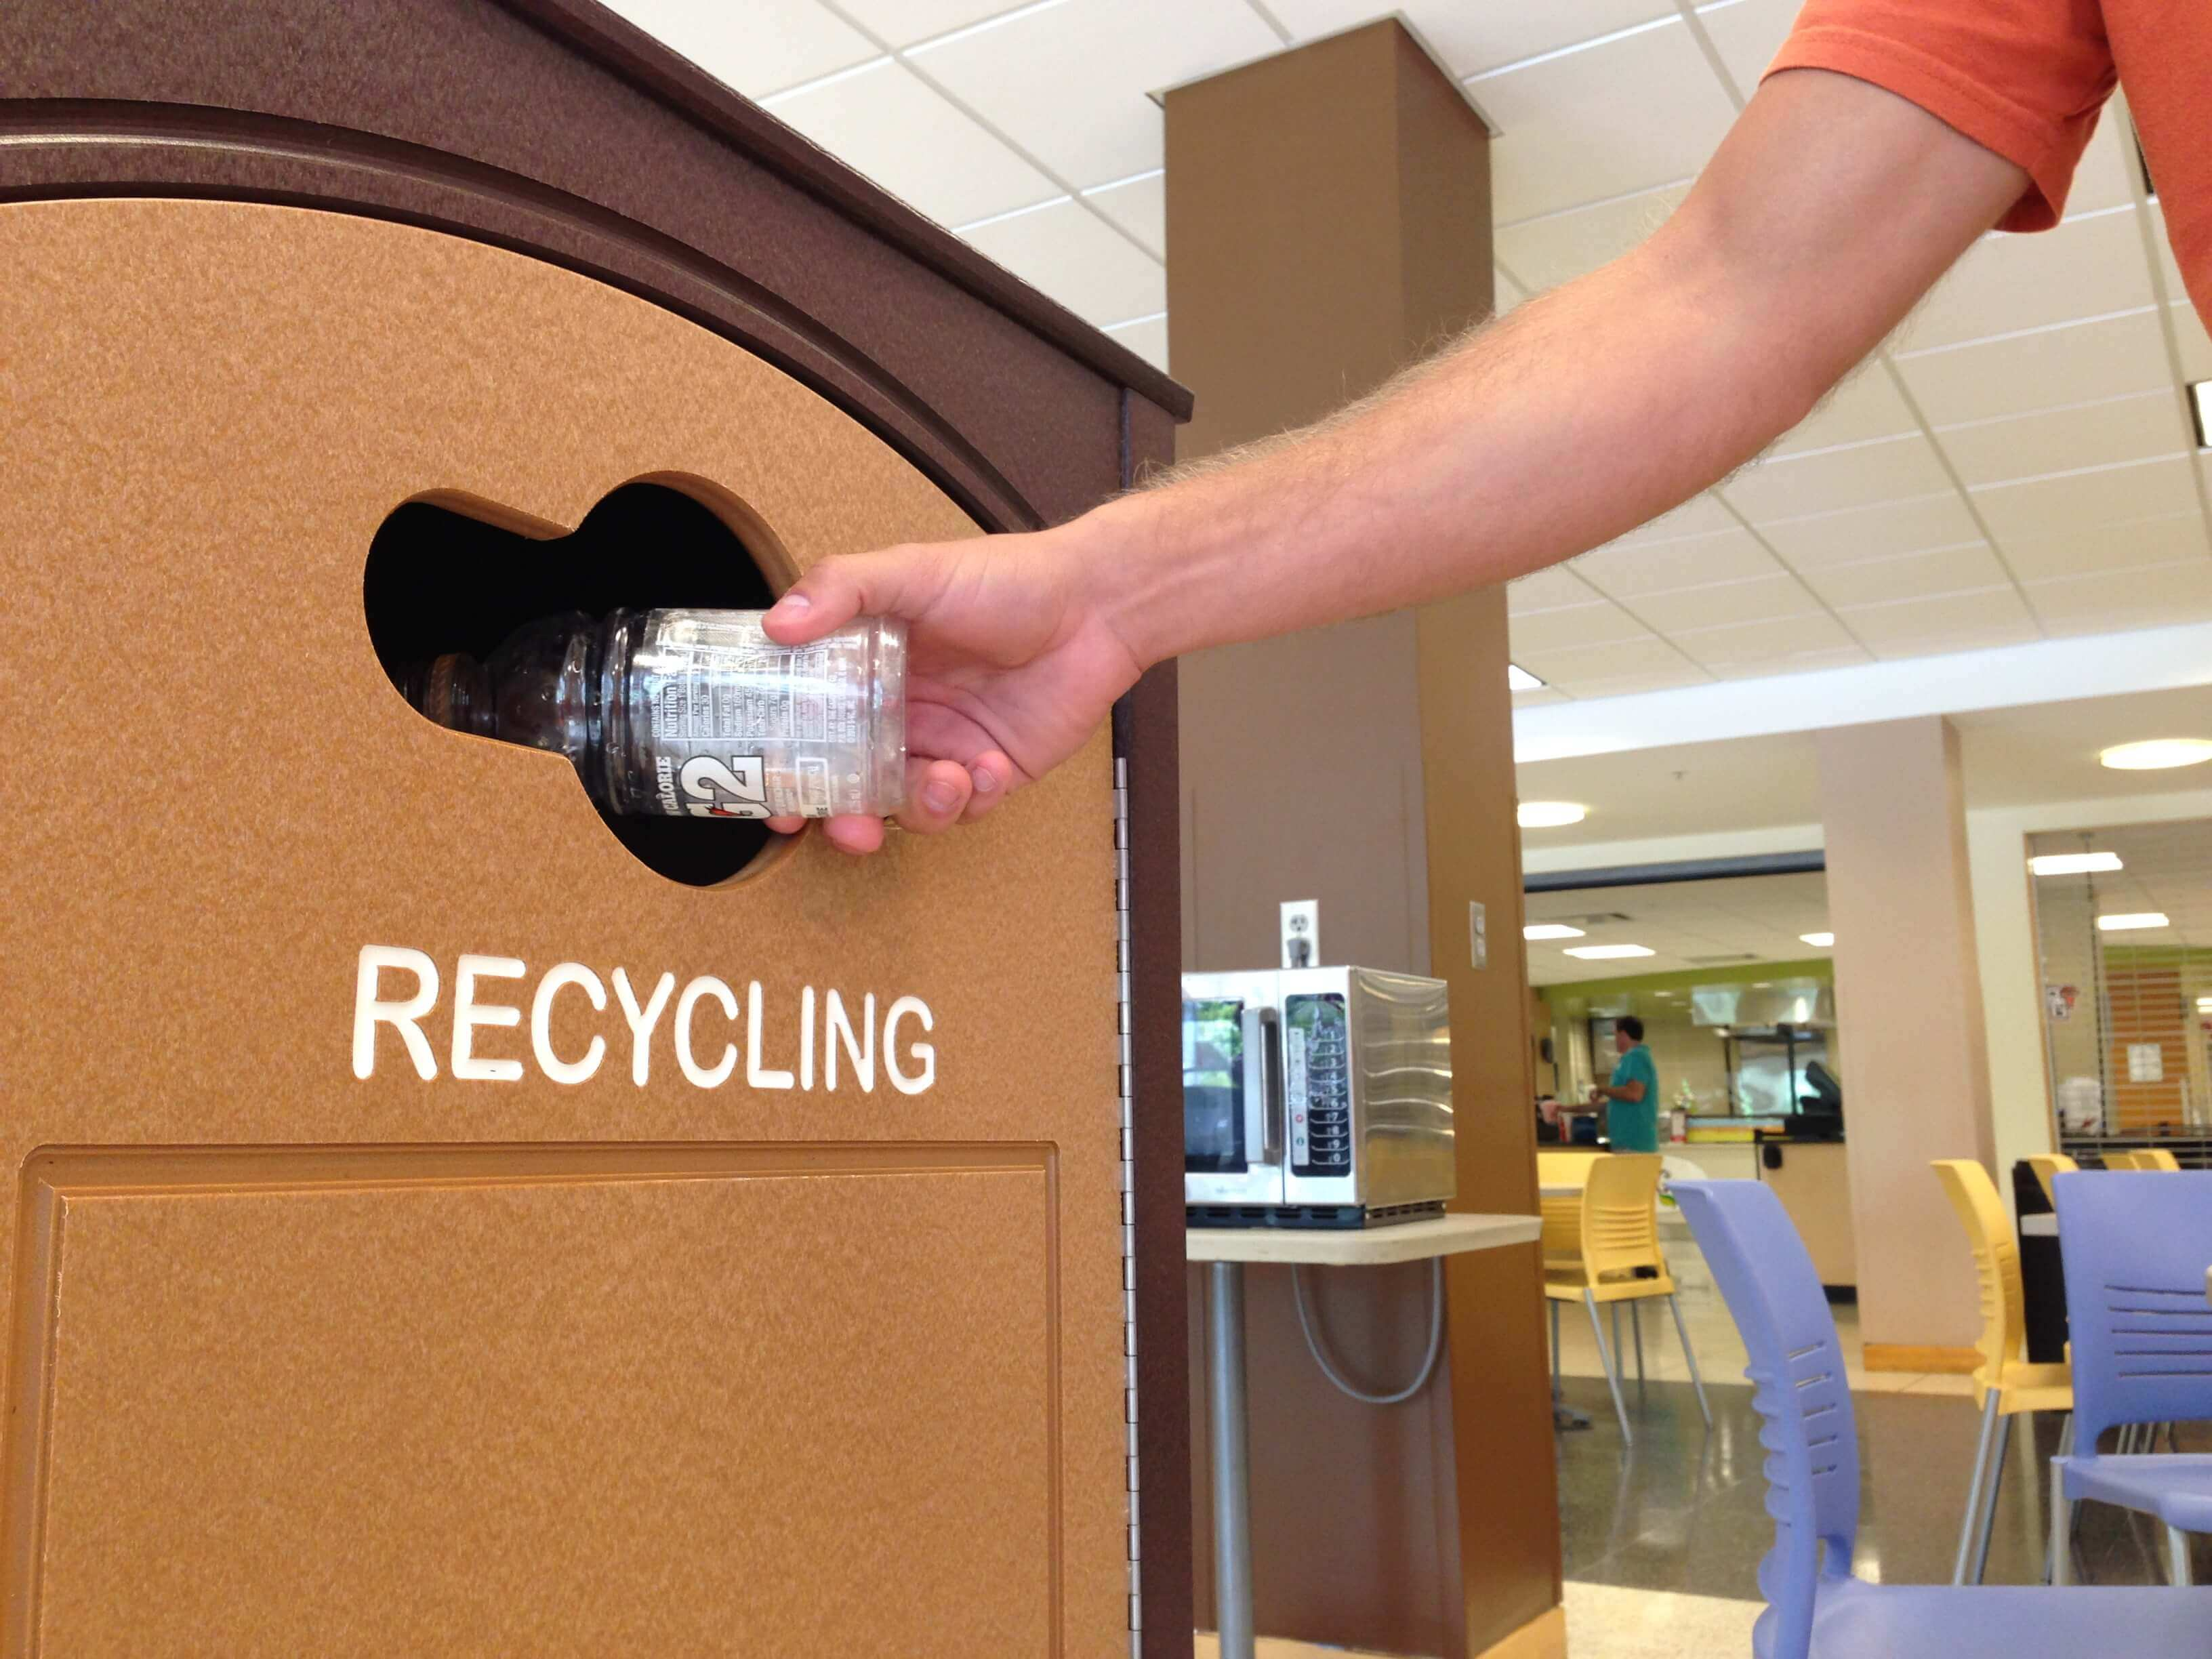 Recycling Bin Boosts Campus Sustainability